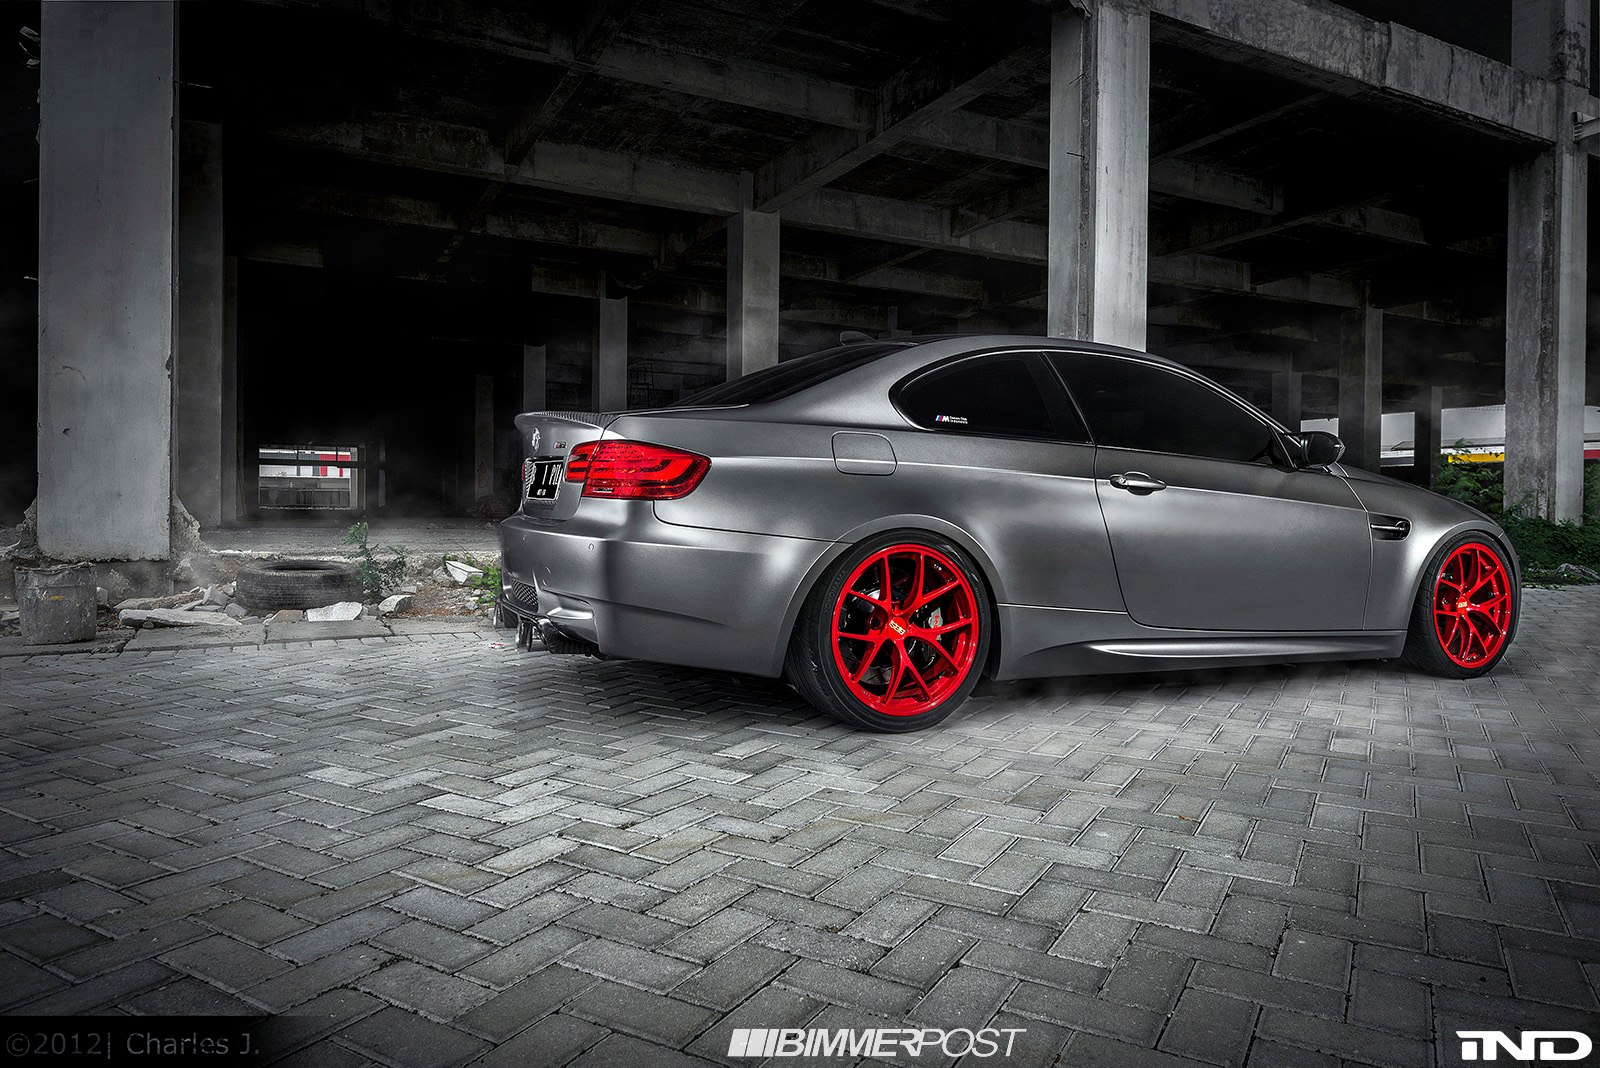 3d Leaf Wallpapers For Mobile Ind Bmw E92 M3 And F10 M5